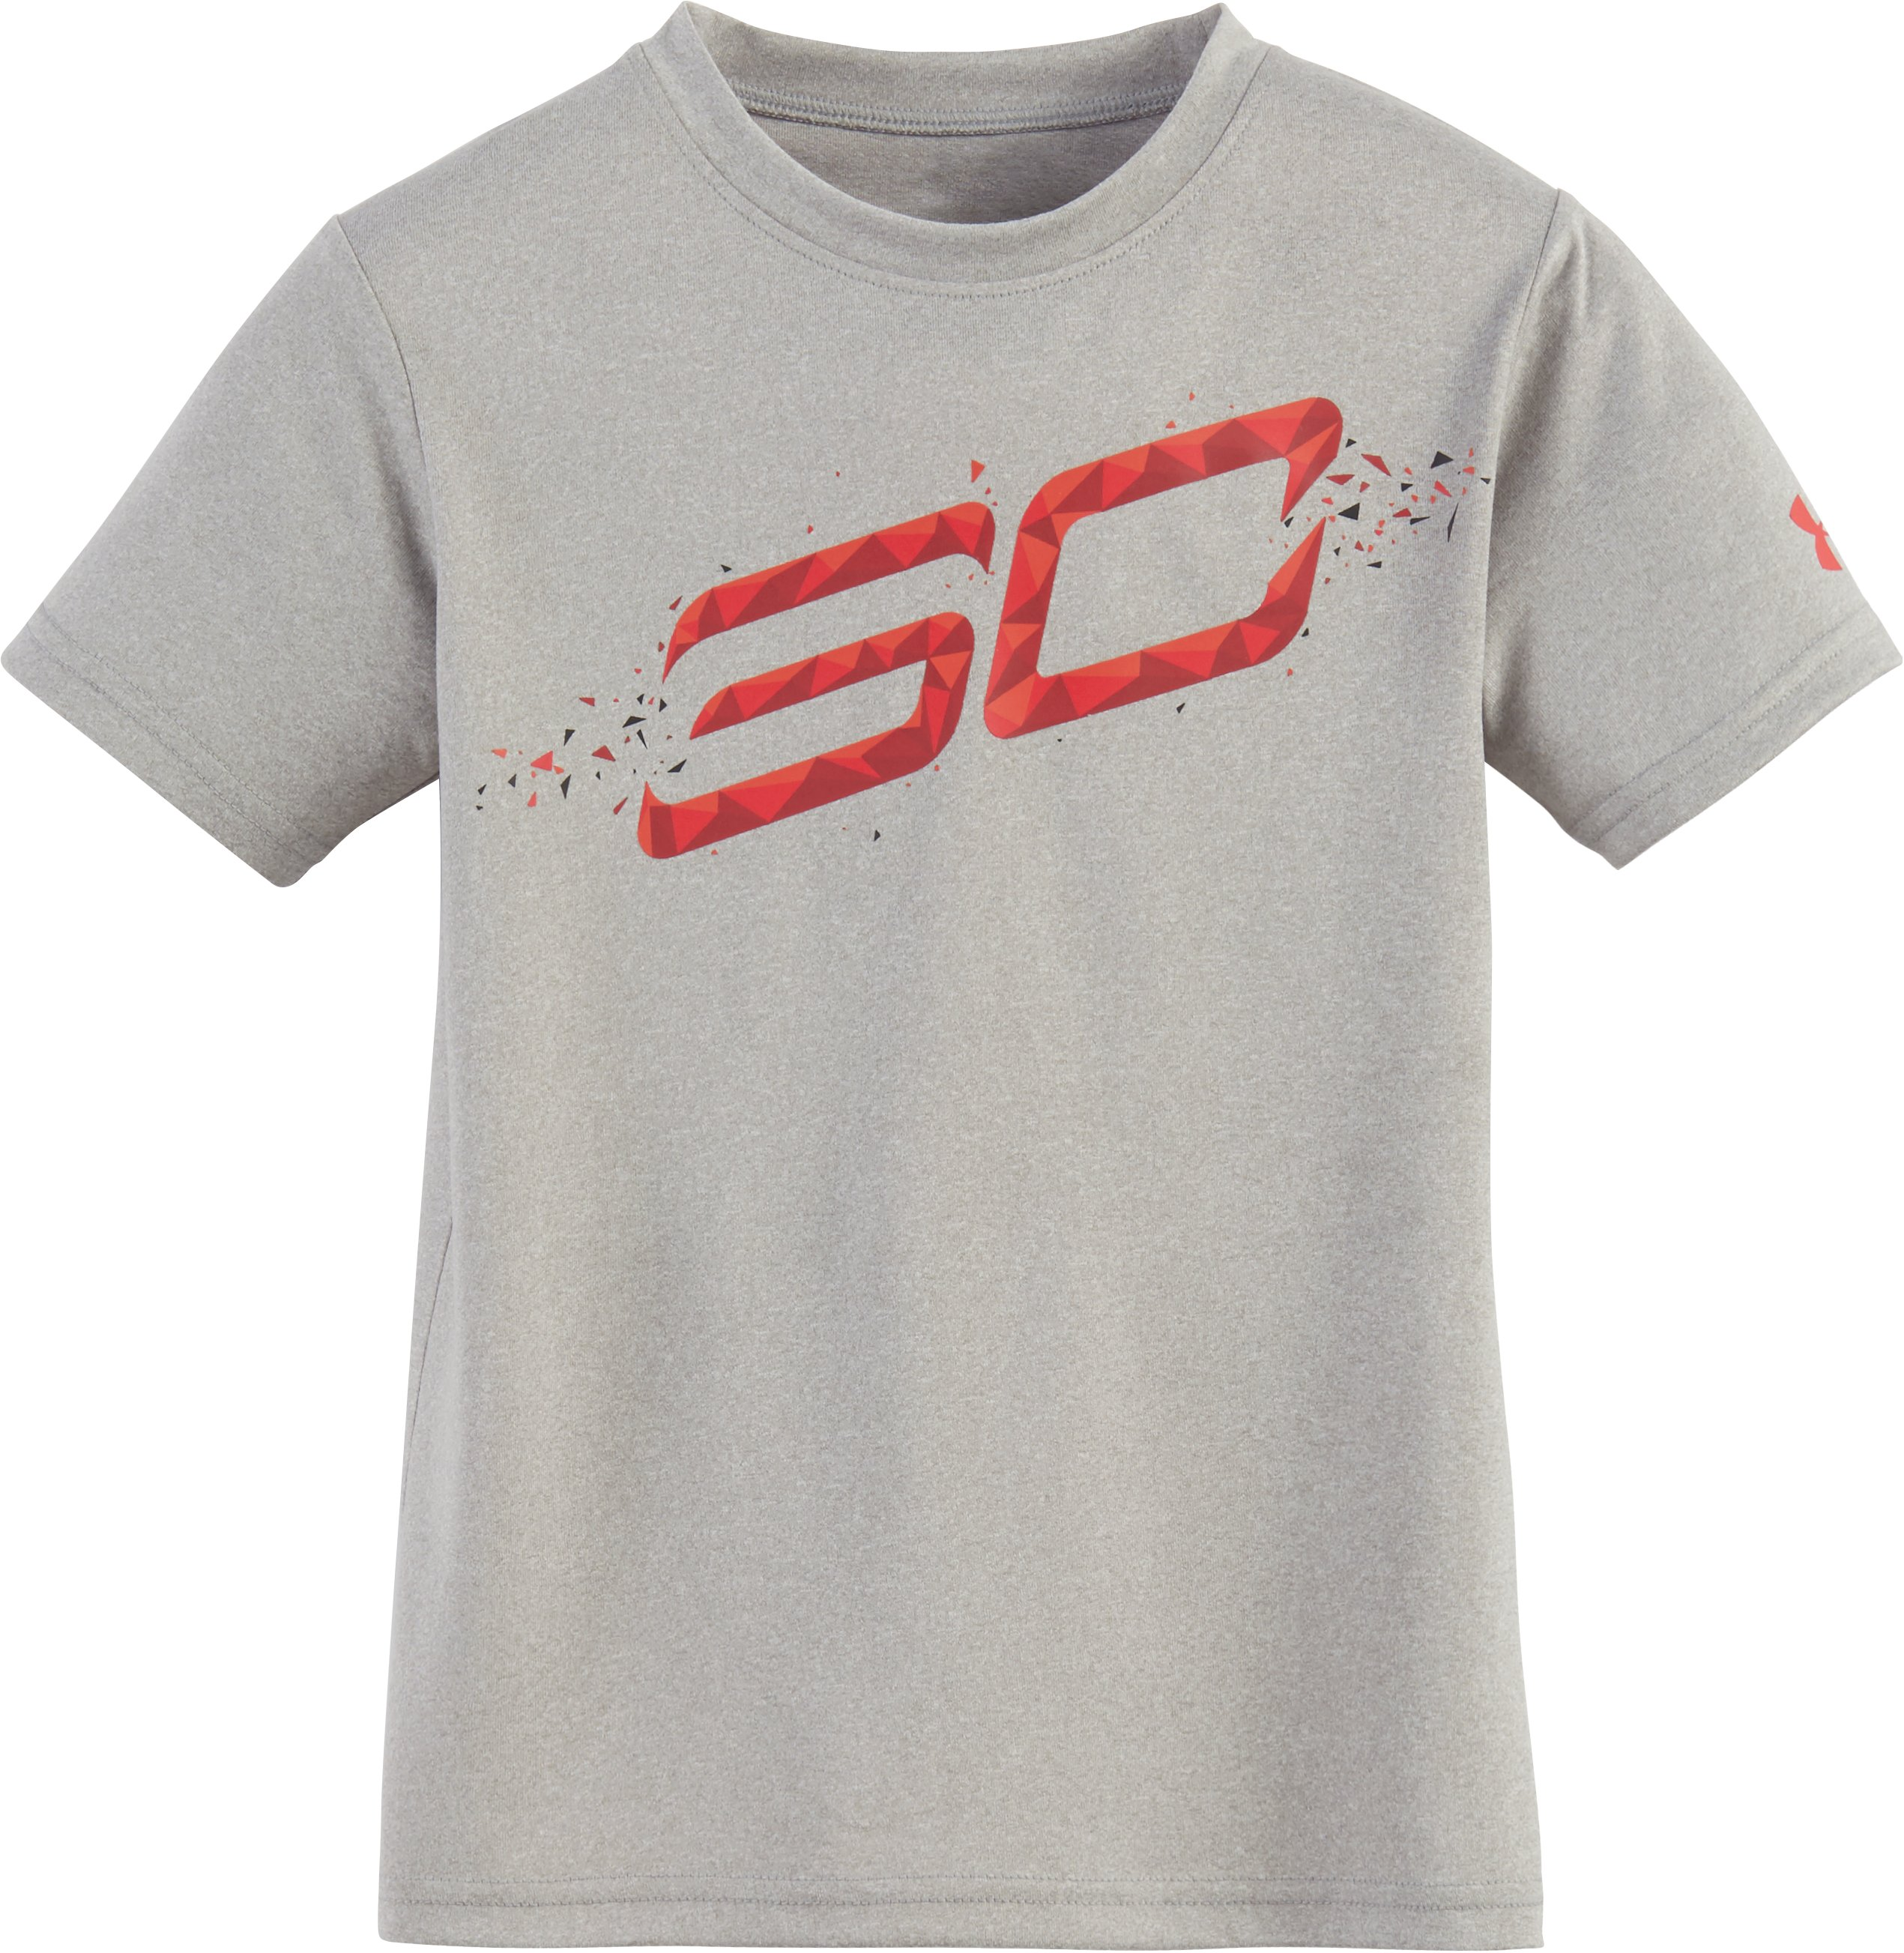 Boys' Pre-School SC30 Player Short Sleeve Shirt, True Gray Heather, Laydown